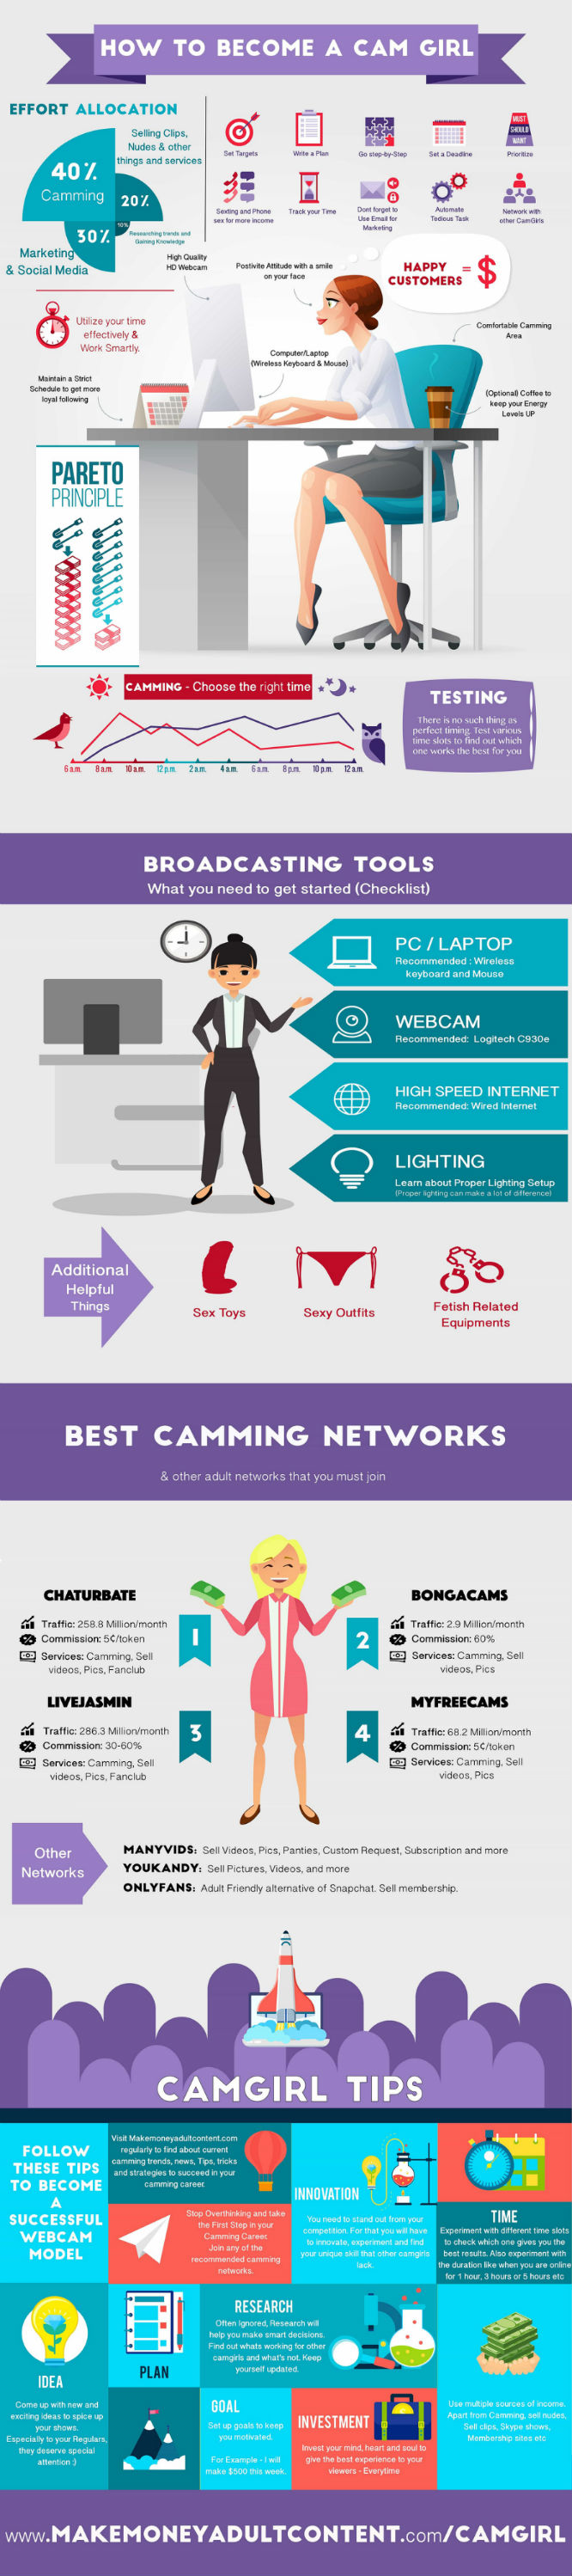 Full infographic- how to become a cam girl.